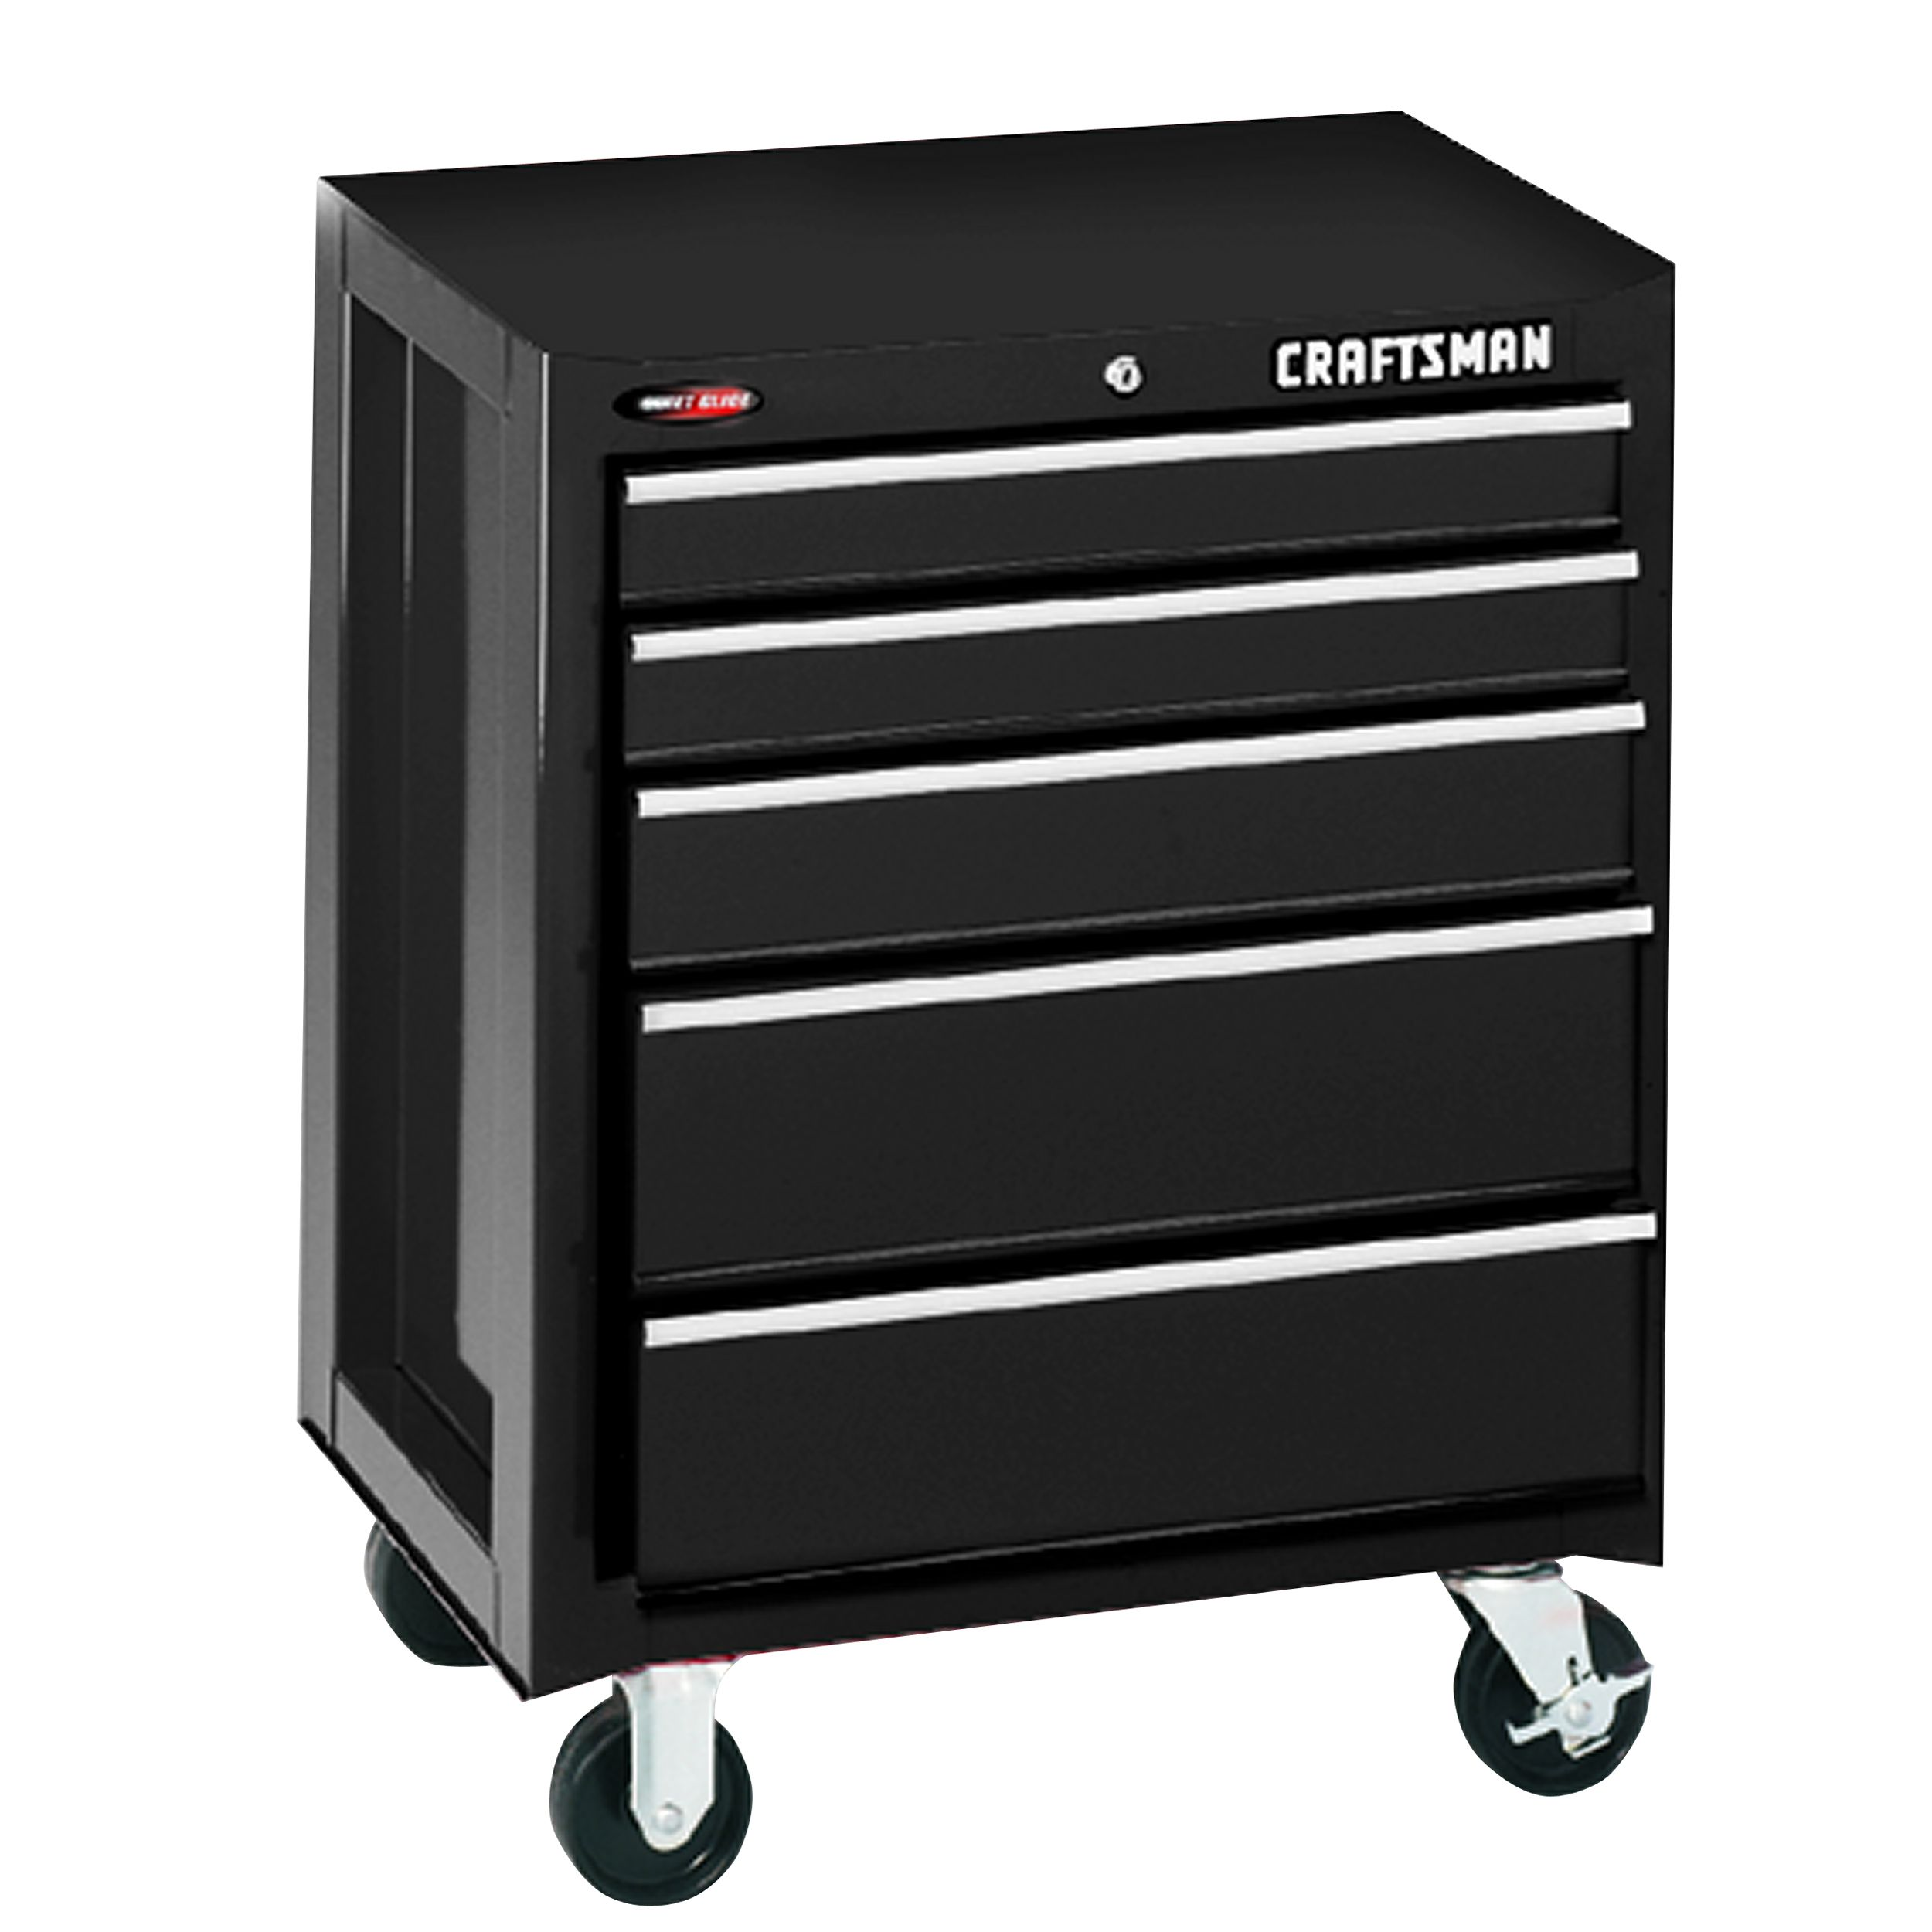 "Craftsman 26"""" Wide 5-Drawer Quiet Glide Bottom Chest - Black"